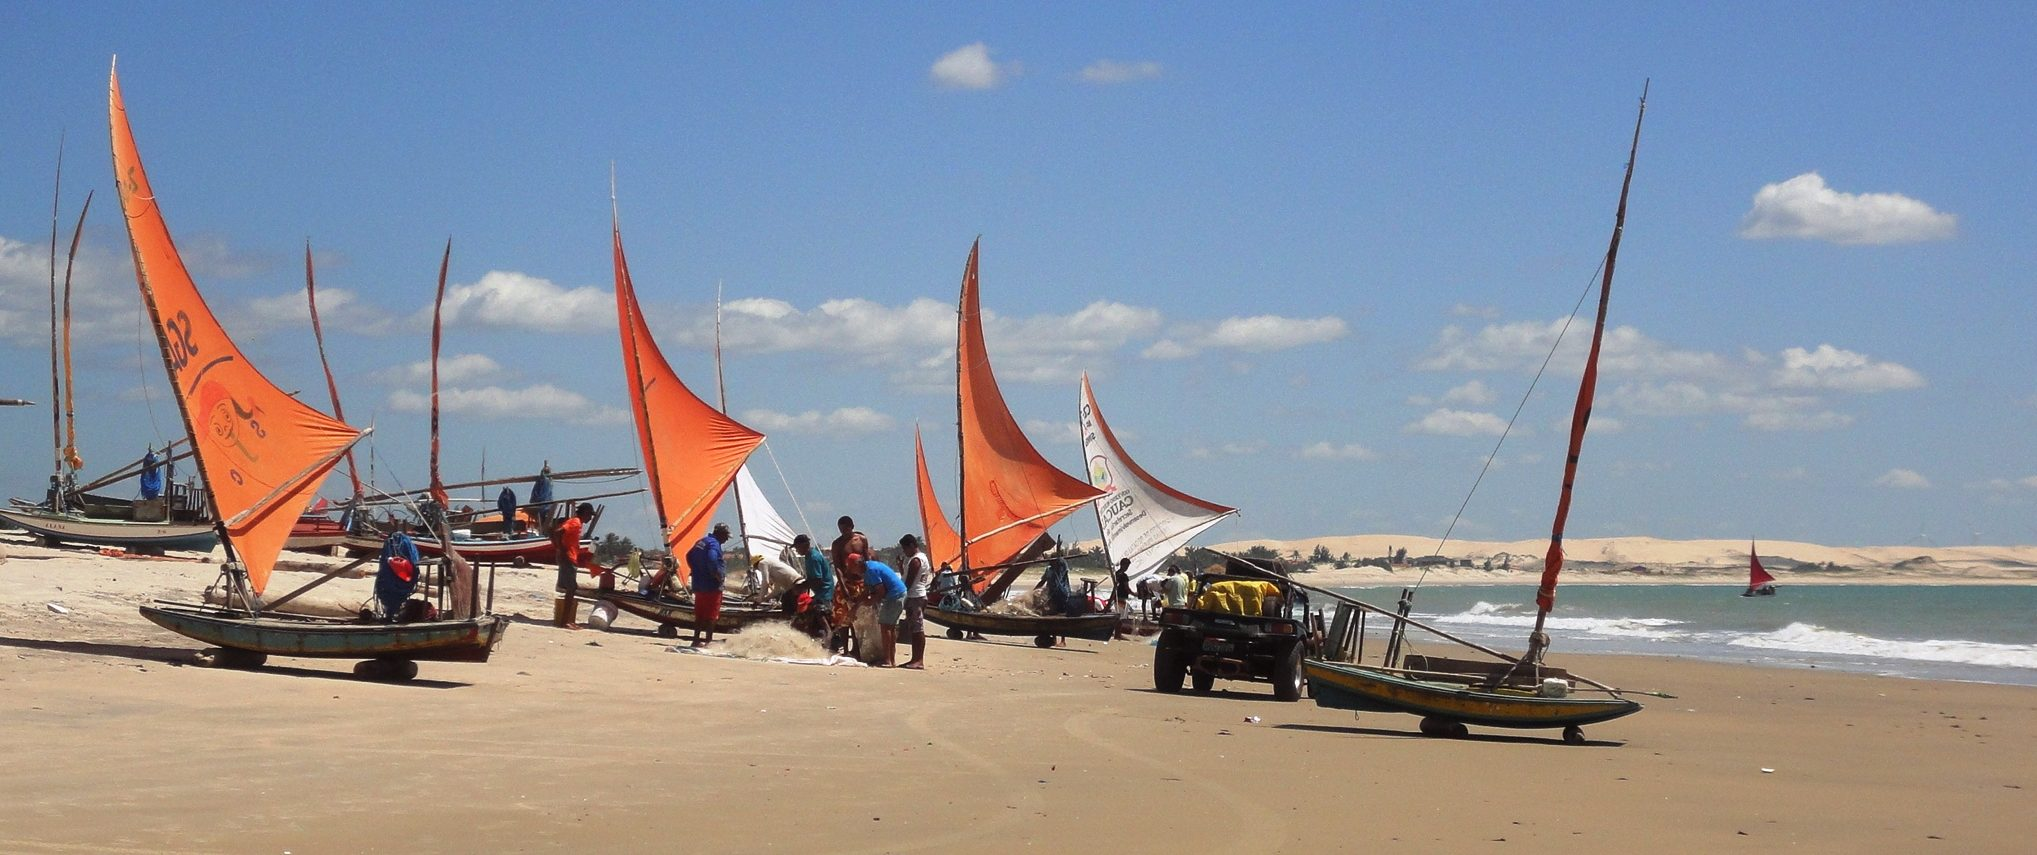 Jangadas on the beach, on the coast of Nordeste.